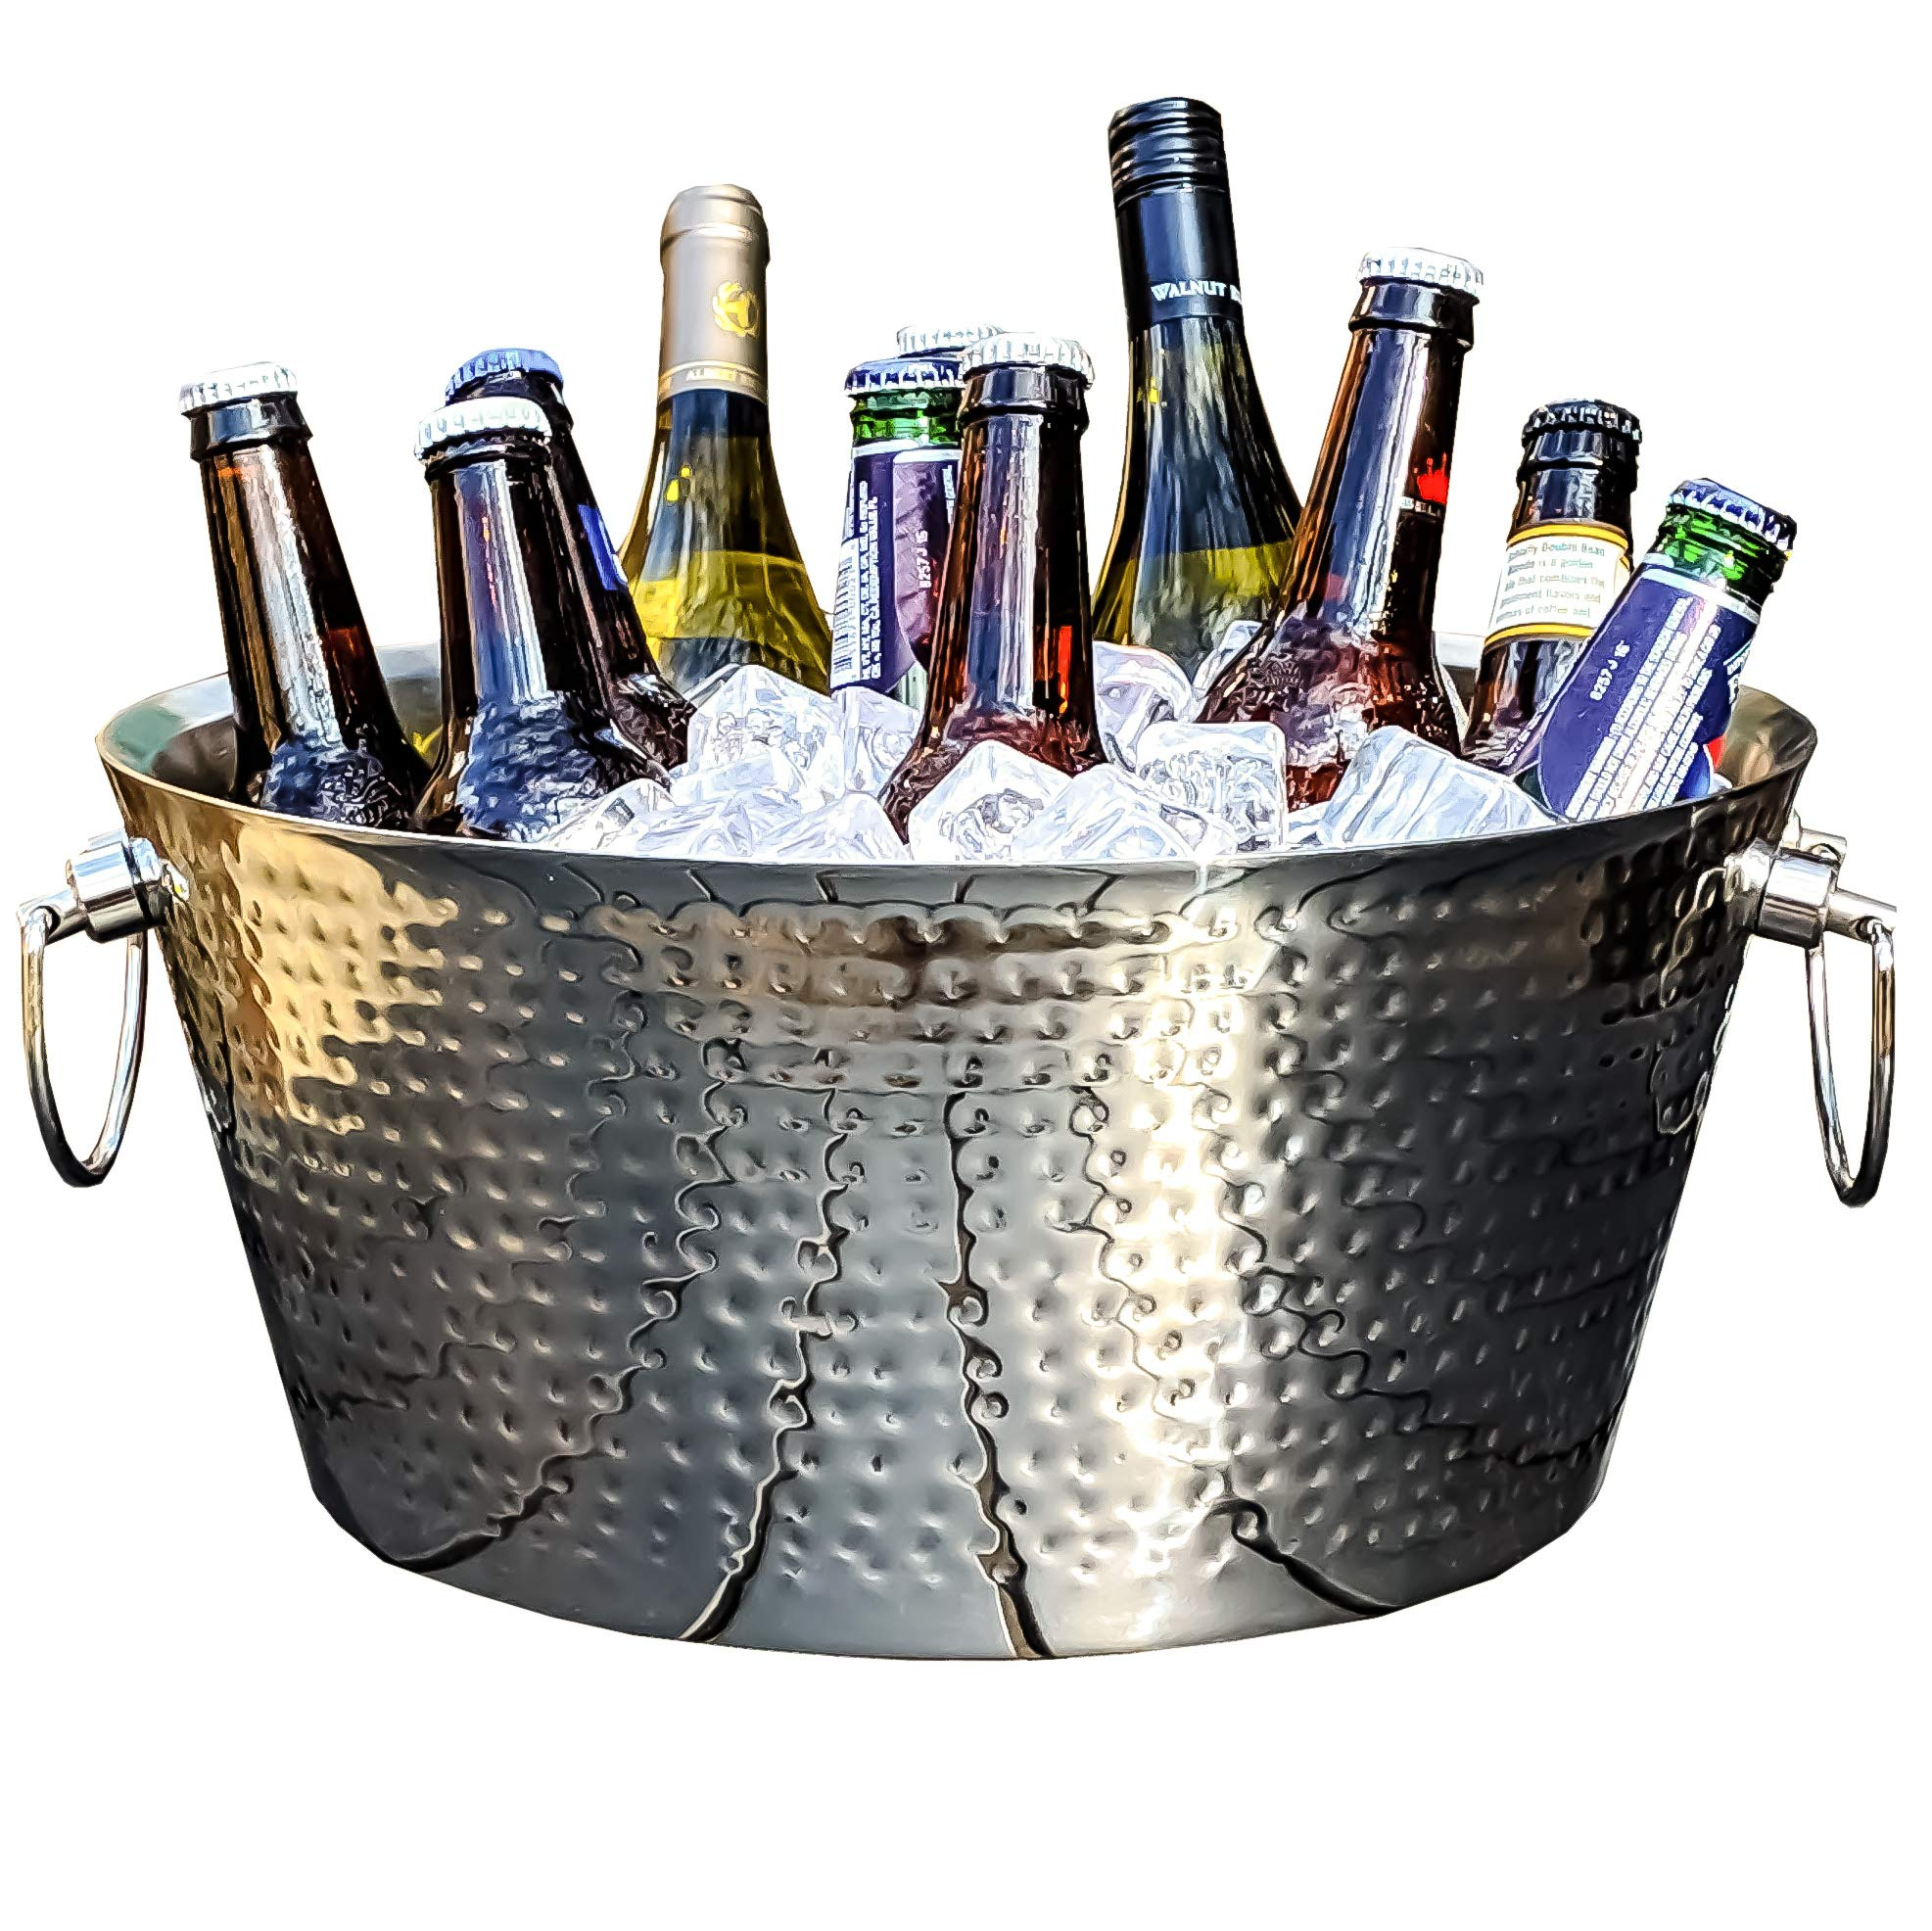 BREKX Anchored Double Walled Hammered Steel Beverage Tub Wine Chiller, Large, Silver by BREKX